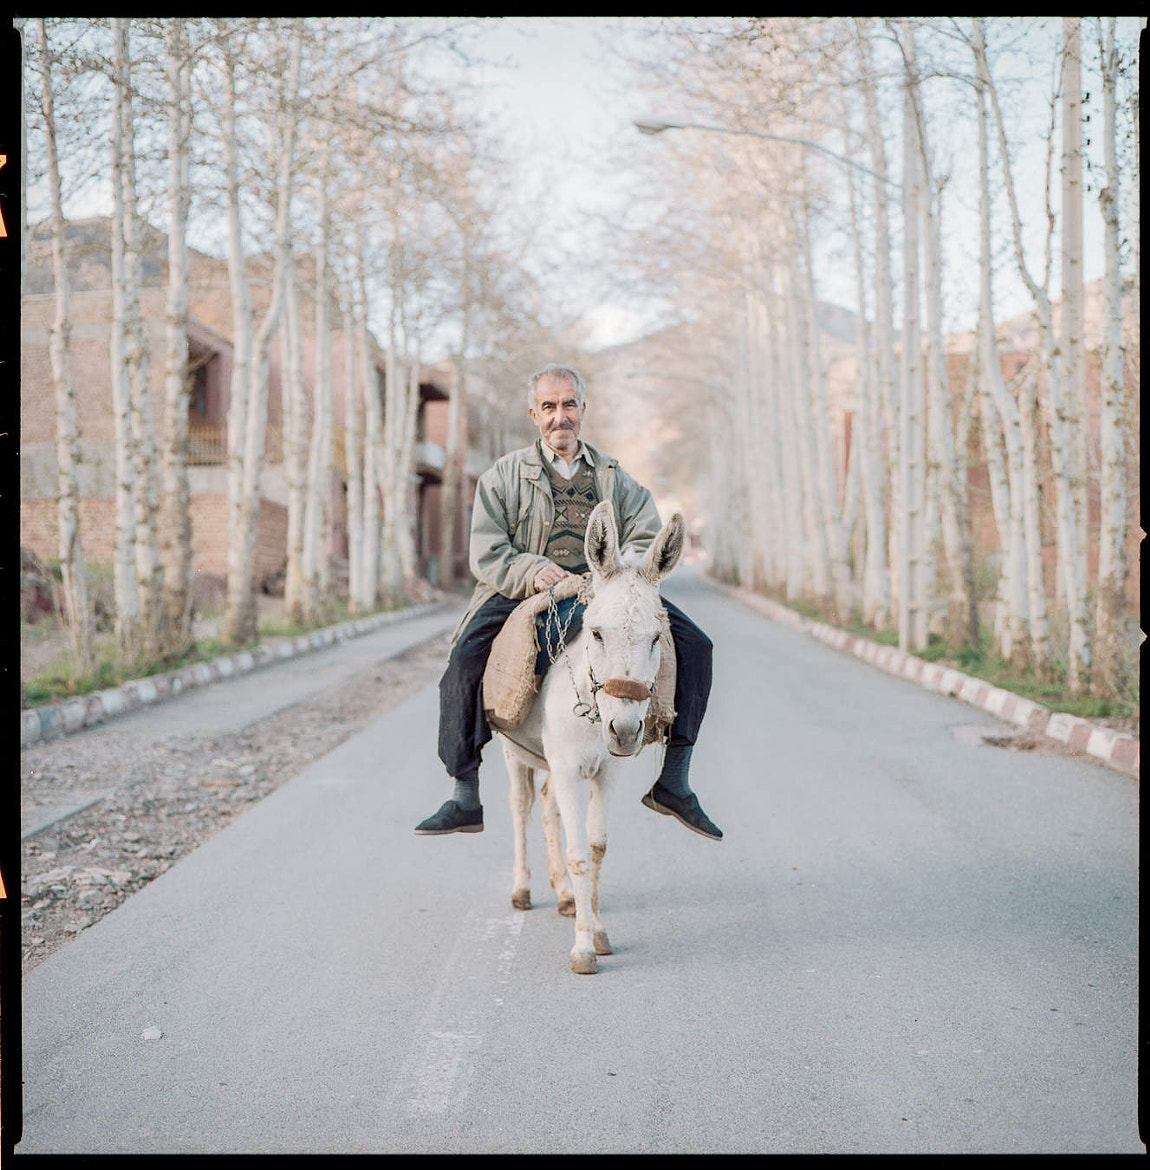 Photograph Villager on Donkey, Abyaneh, Iran by Chiaro Scurist on 500px